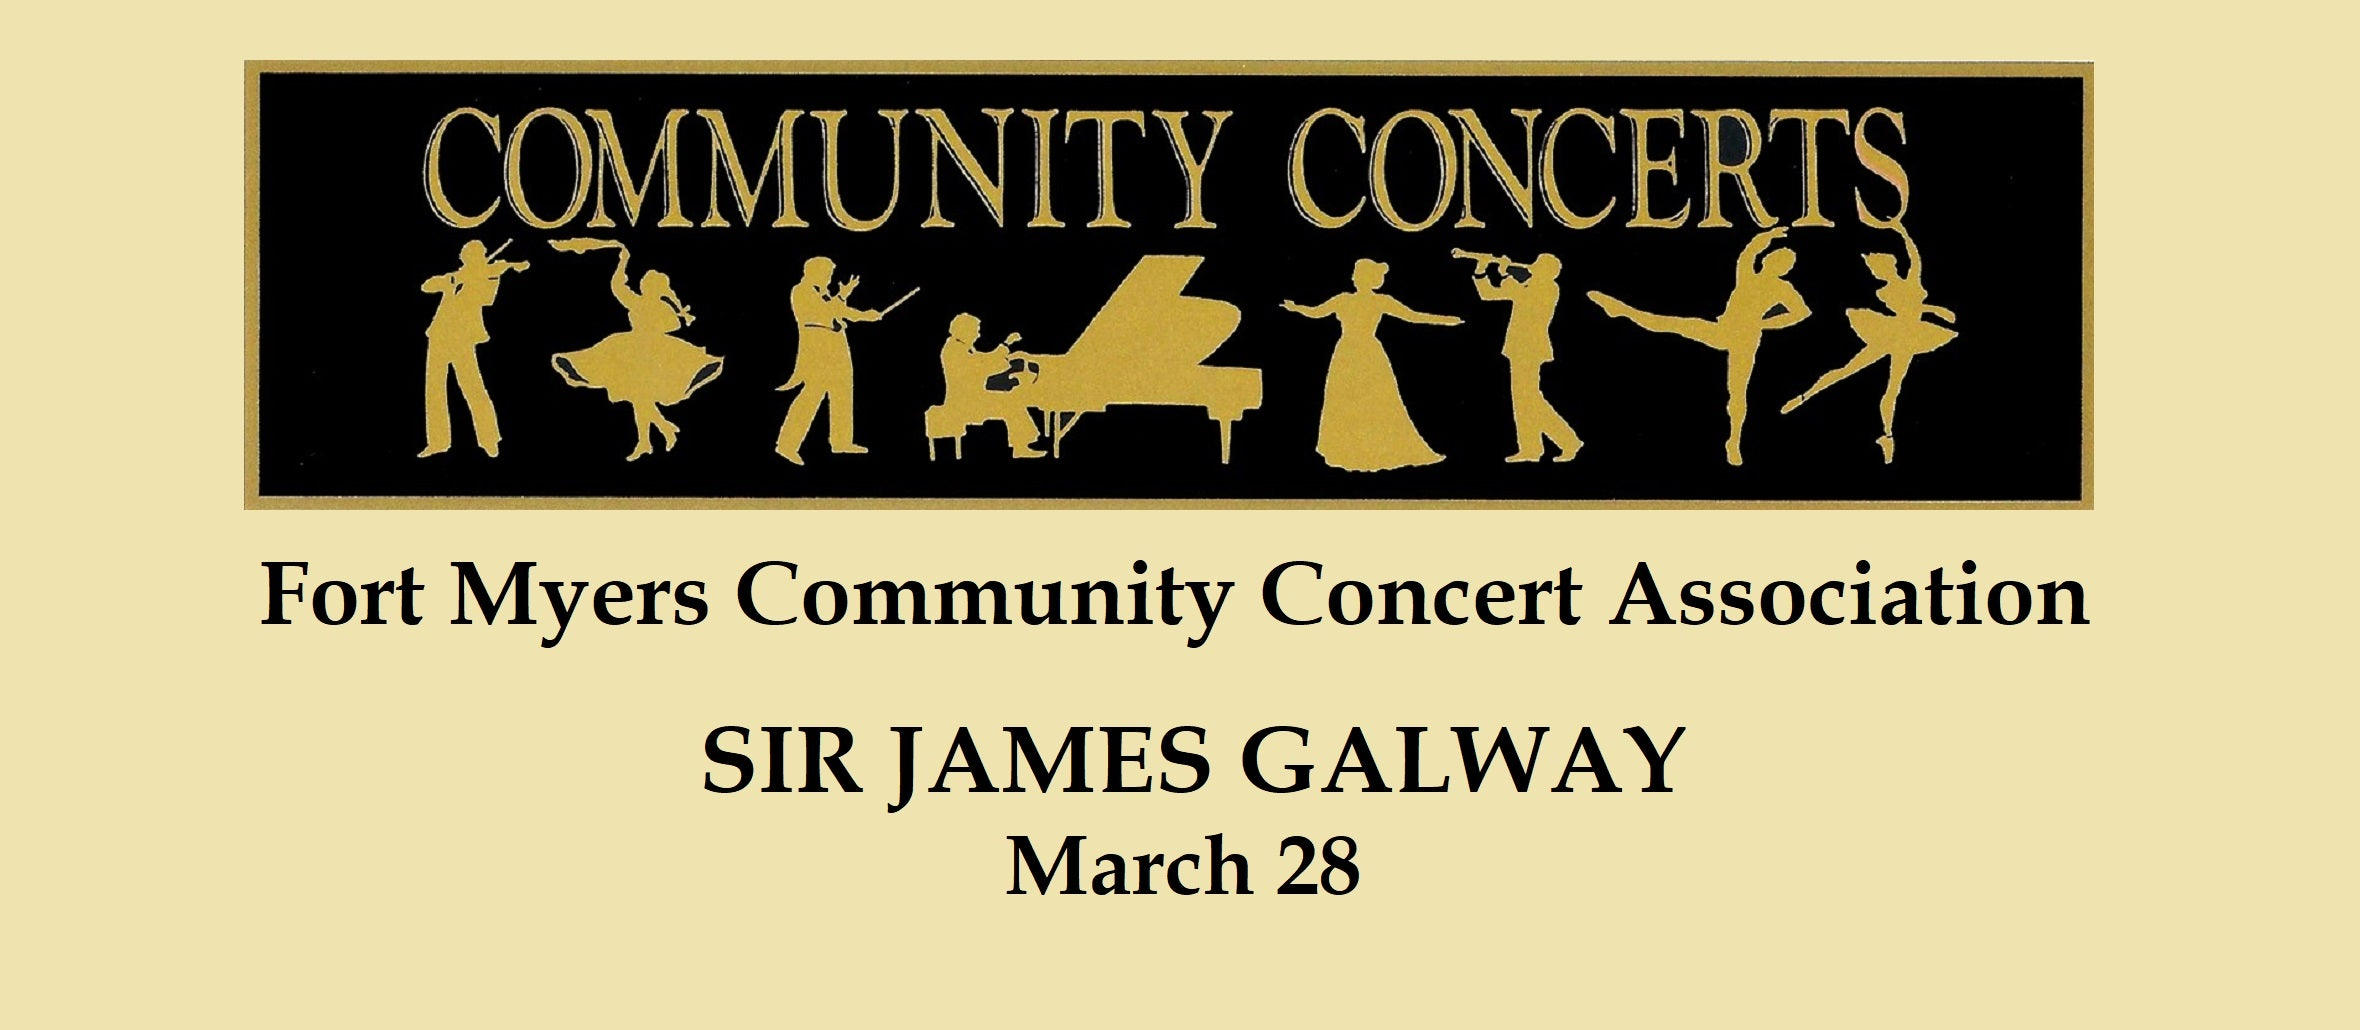 Fort Myers Community Concert: Sir James Galway